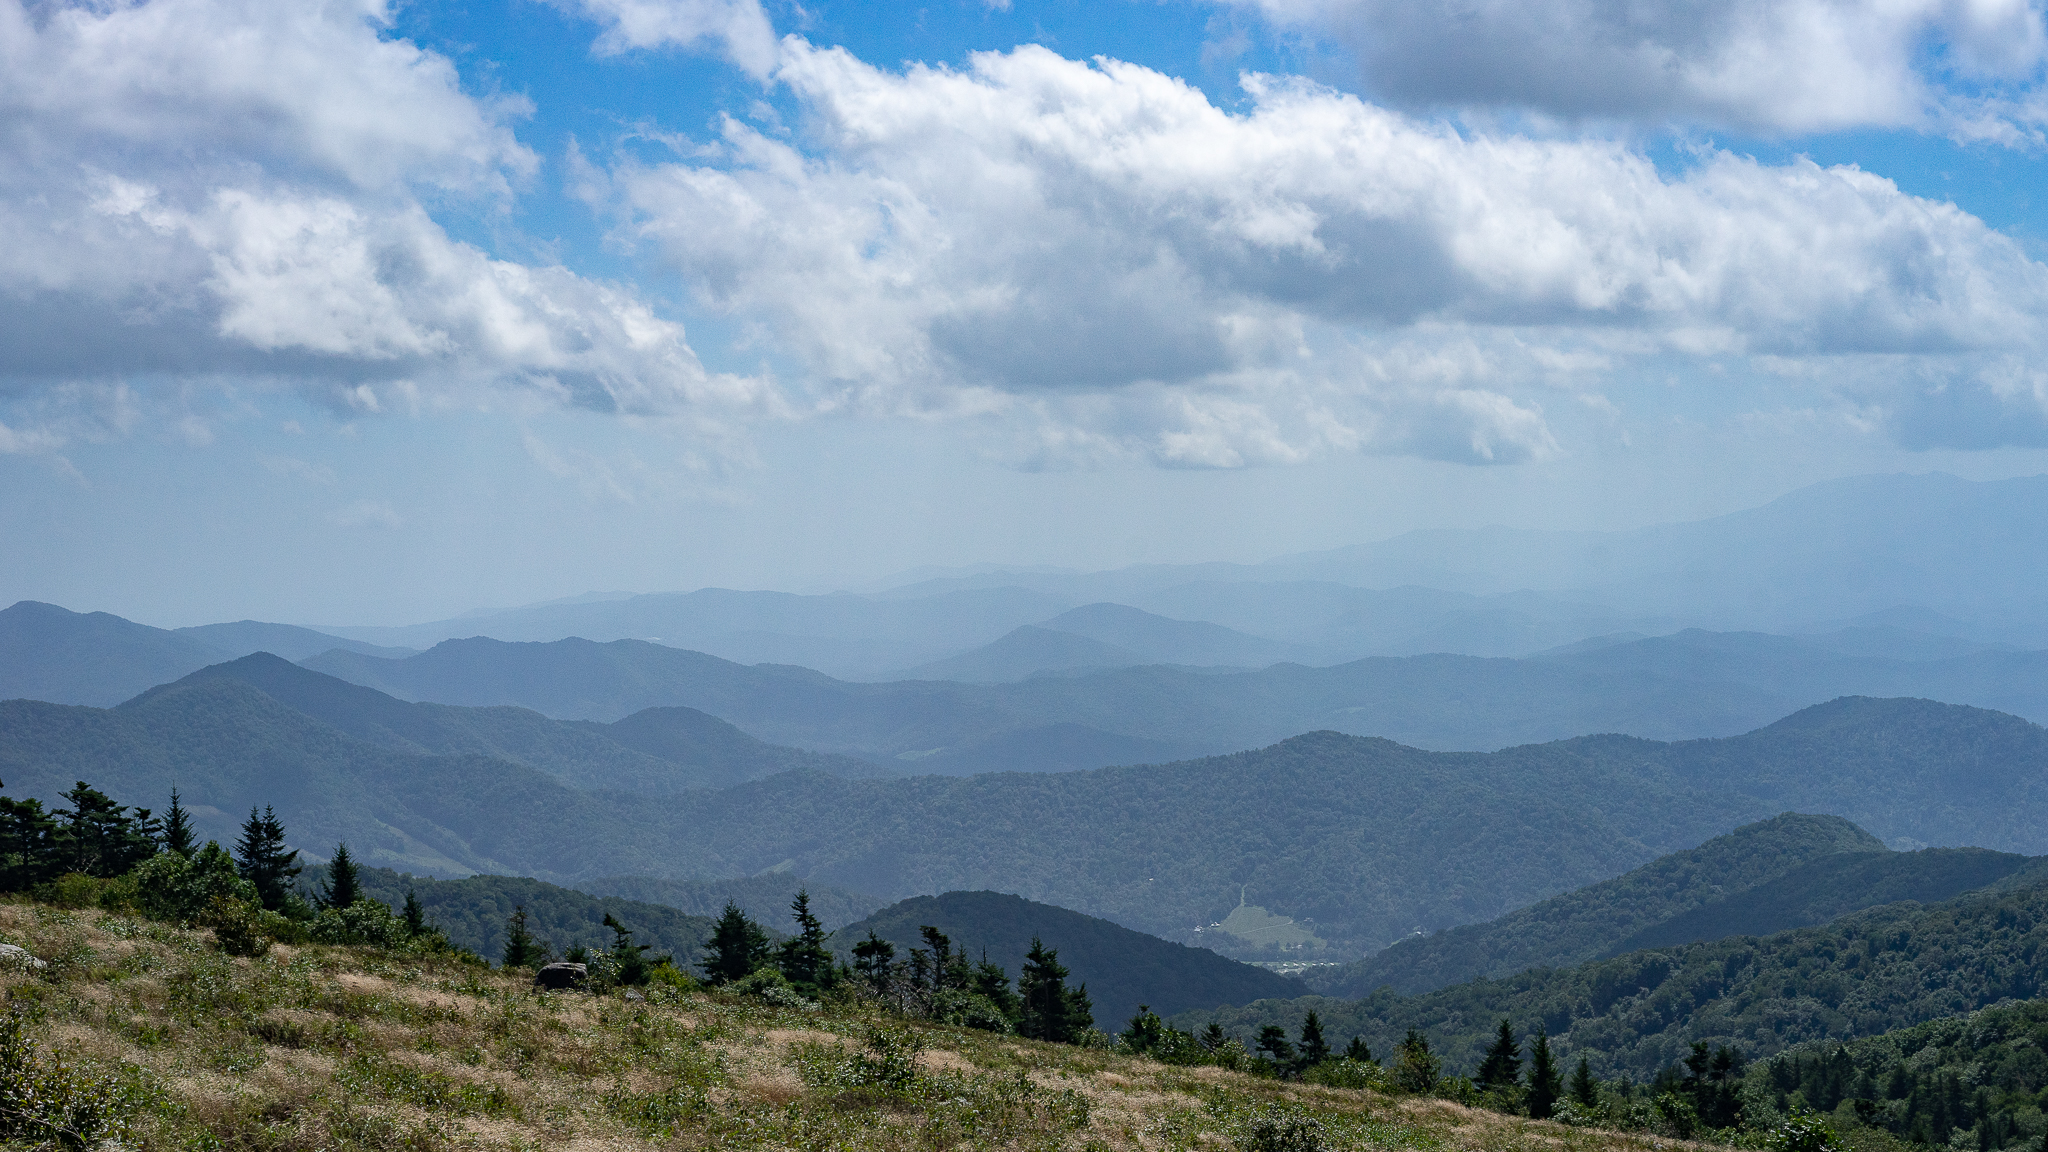 View from Carver's Gap